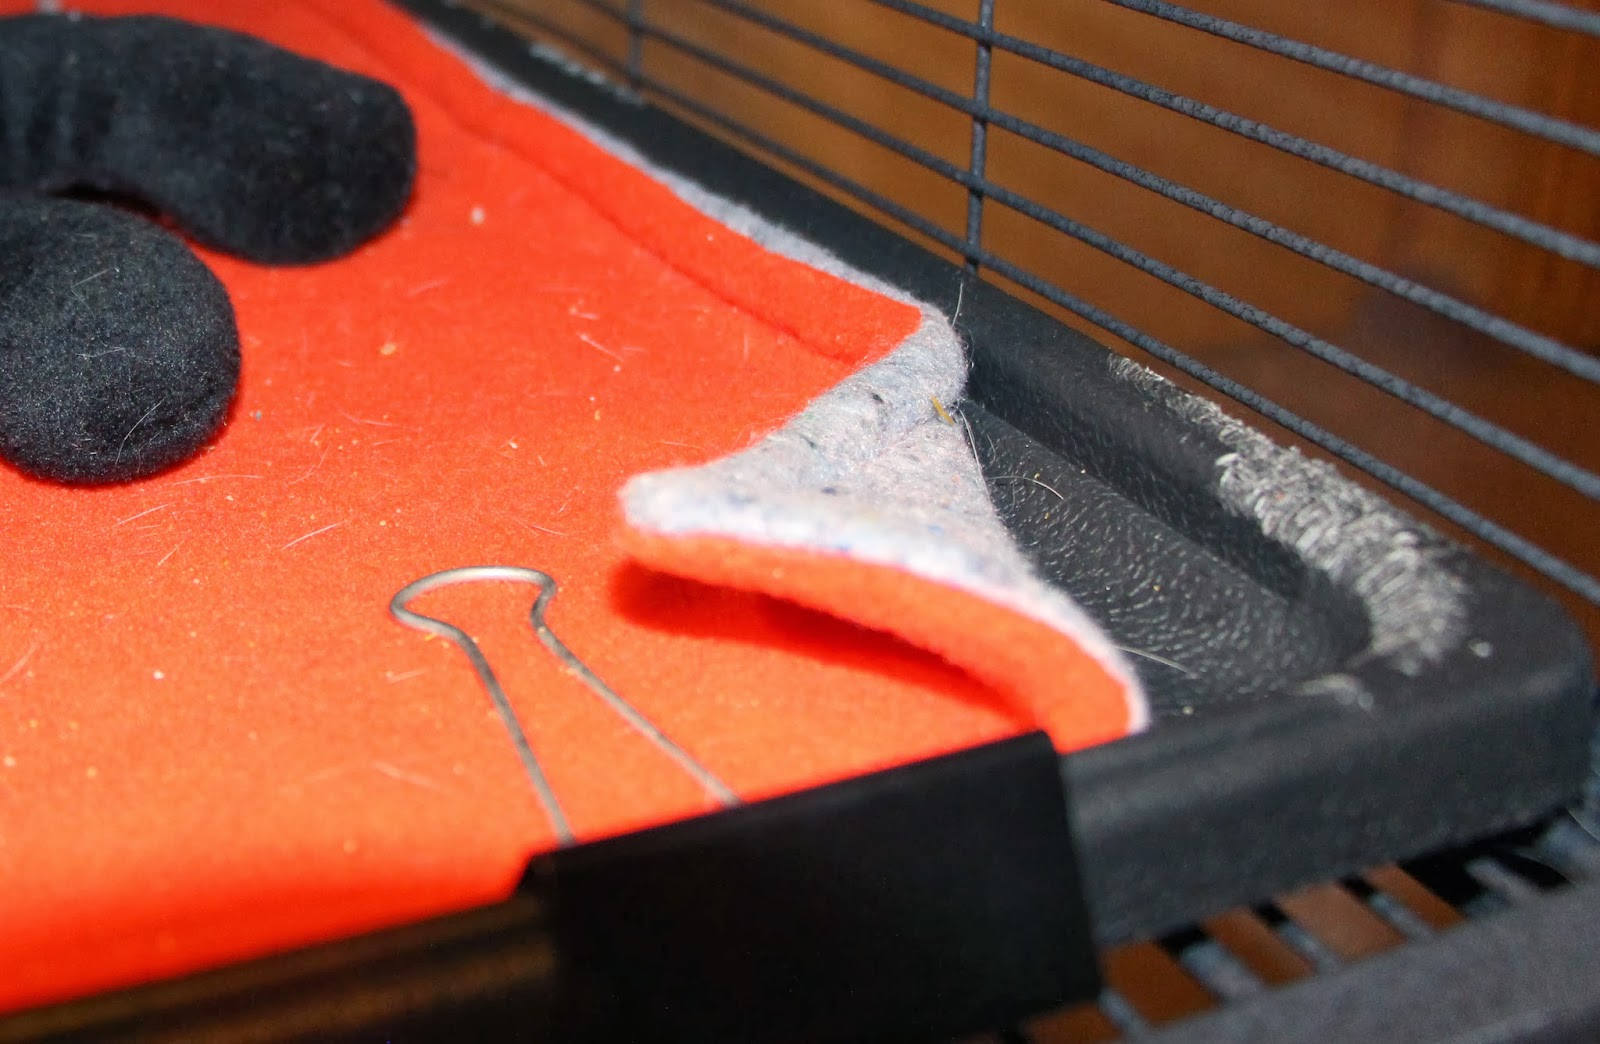 Ratropolis U Haul Furniture Pads With Rat Cage Liners Part 2 Early Review